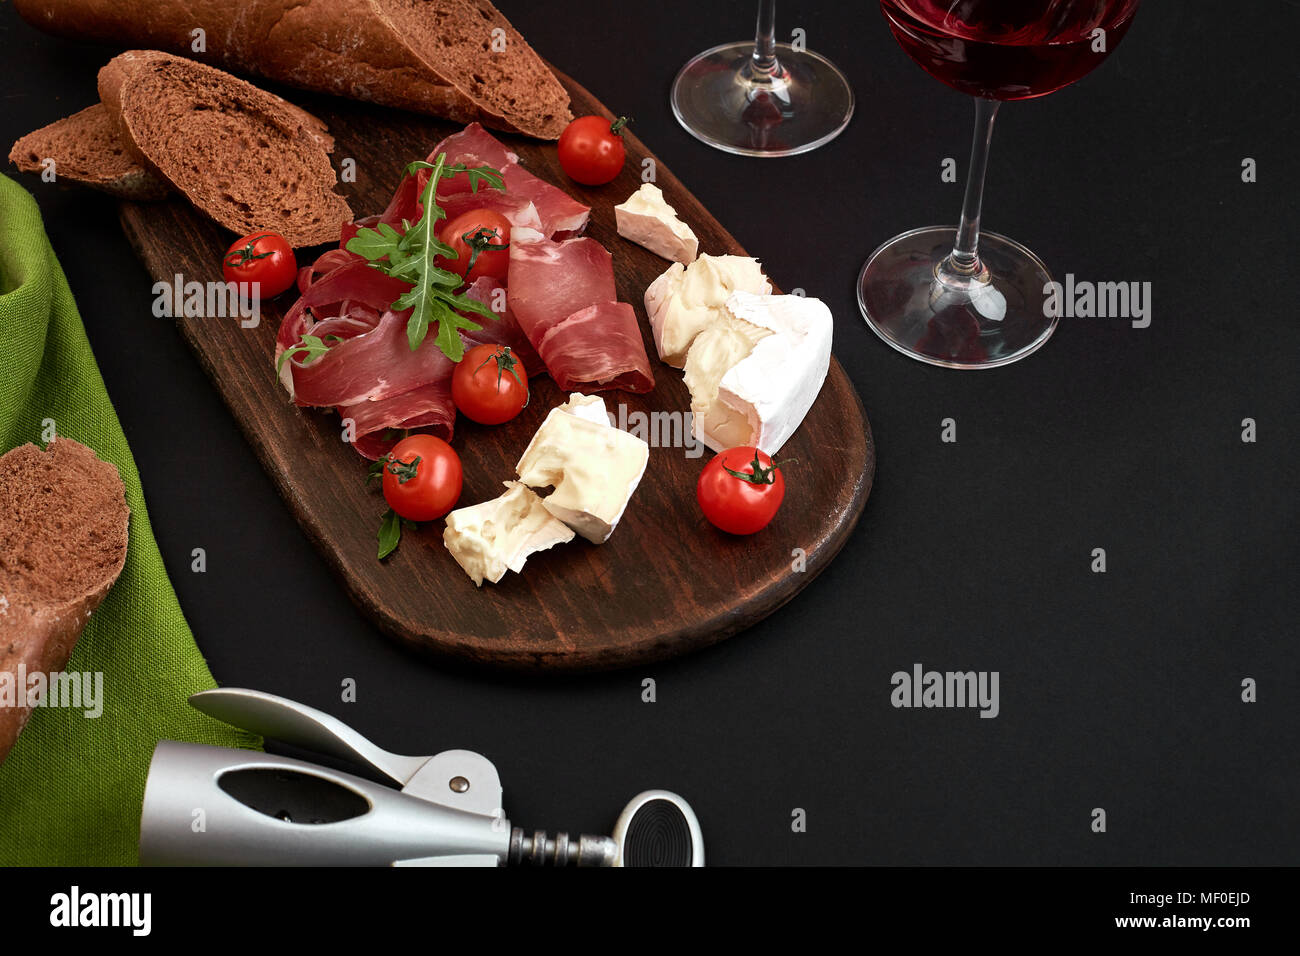 Cheese, prosciutto, bread, vegetables and spices on wooden board on black background with copy space - Stock Image